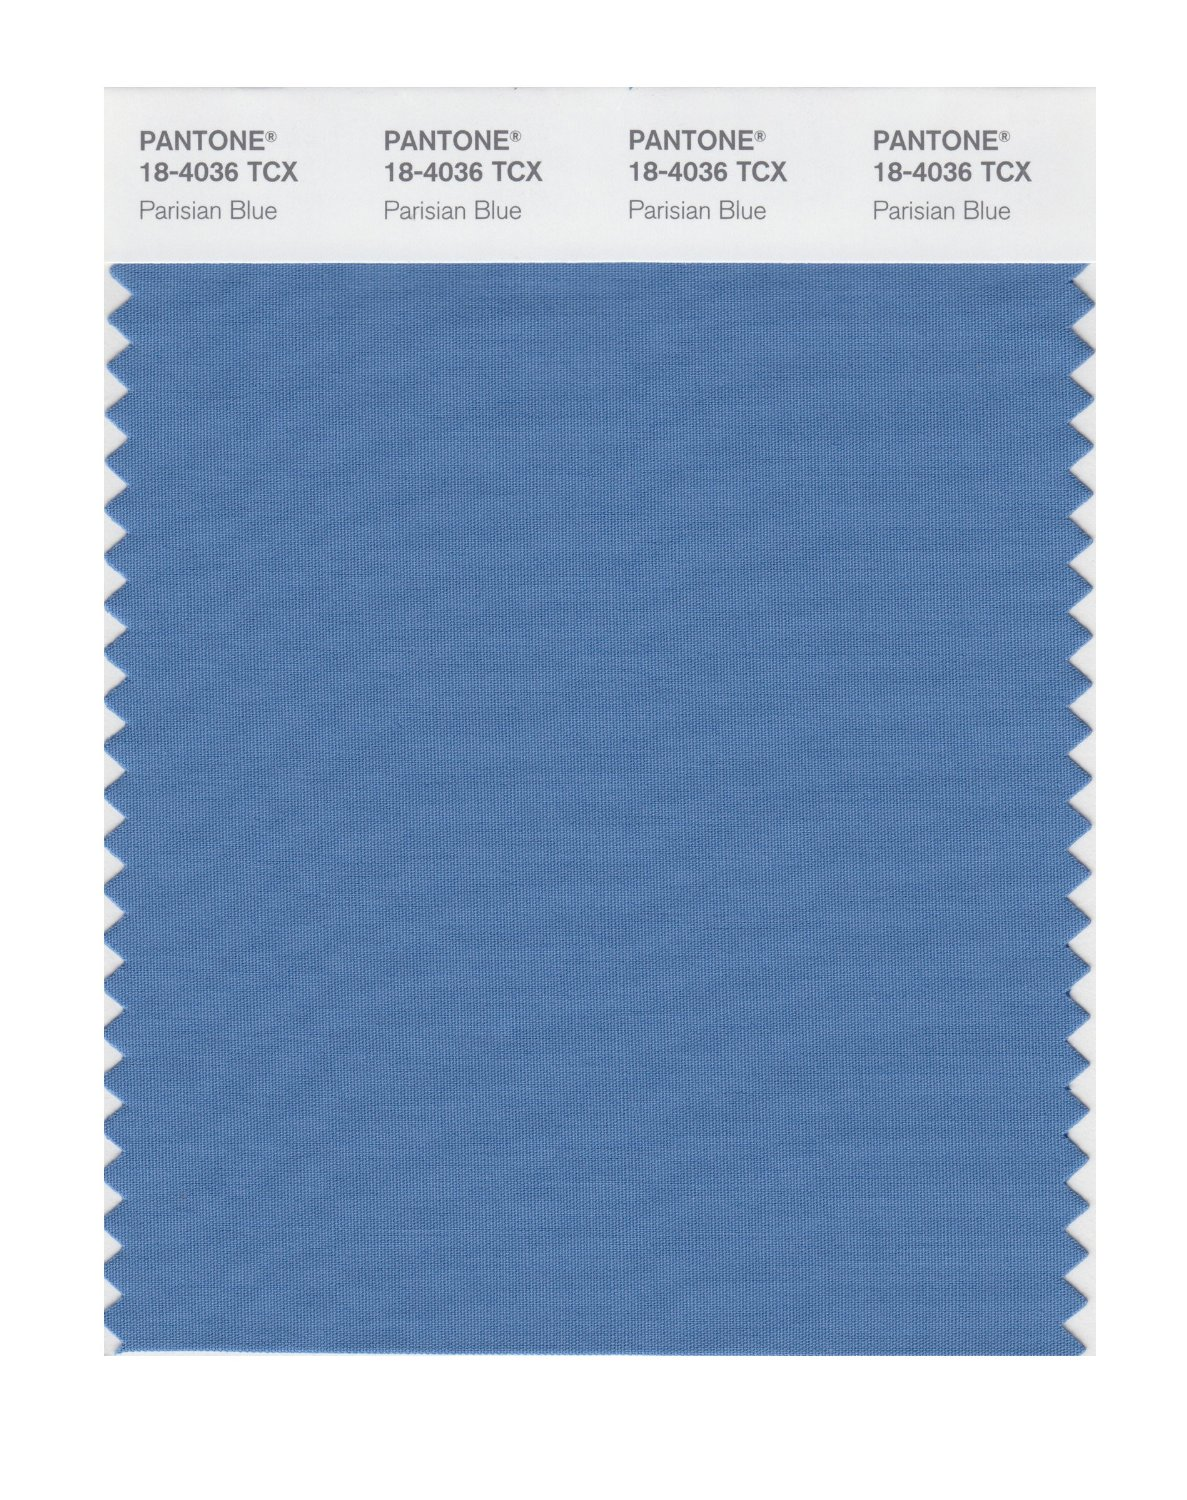 Pantone Smart Swatch 18-4036 Parisian Blue